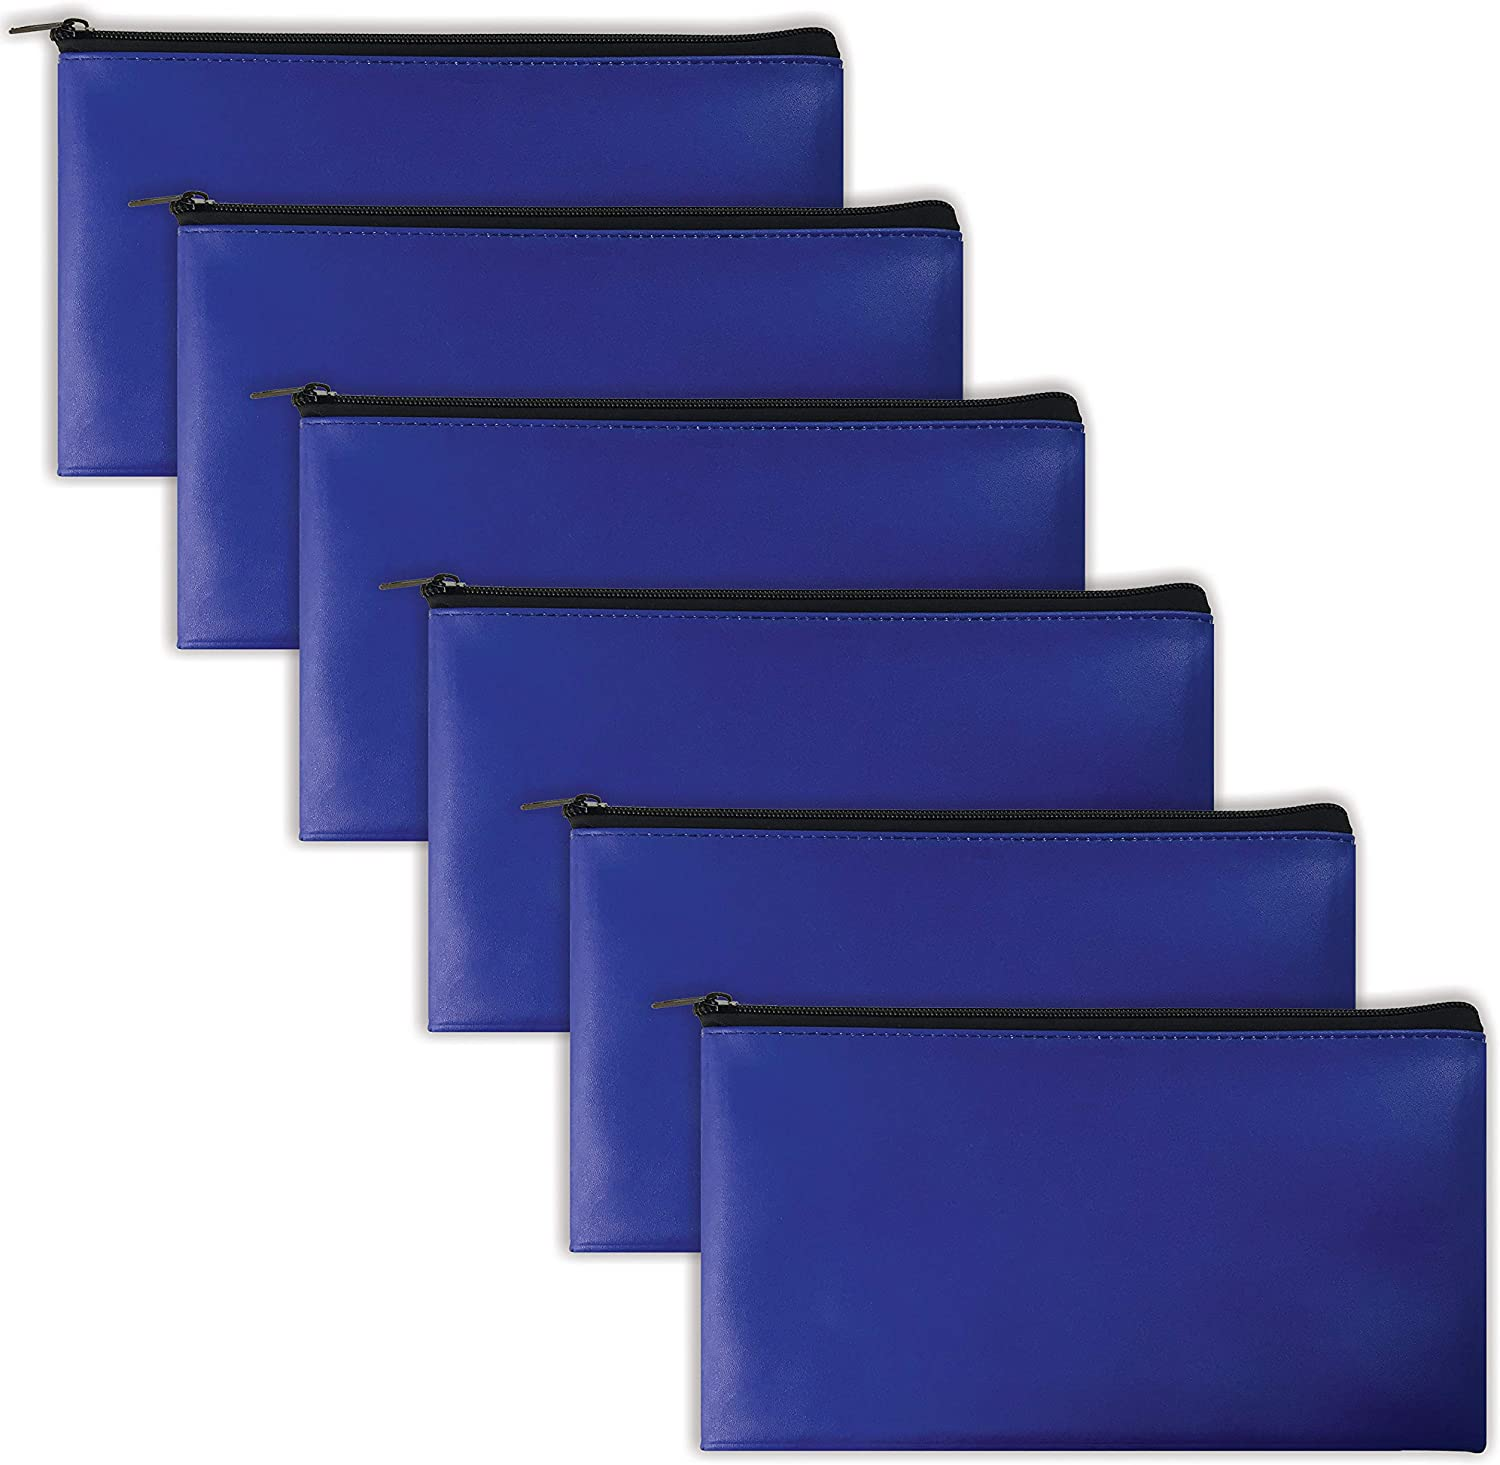 6 Pack, Zippered Security Bank Deposit Bag, by Better Office Products, Leatherette, Cash Bag, Coin Bag, Utility Pouch, Blue, 6 Bags